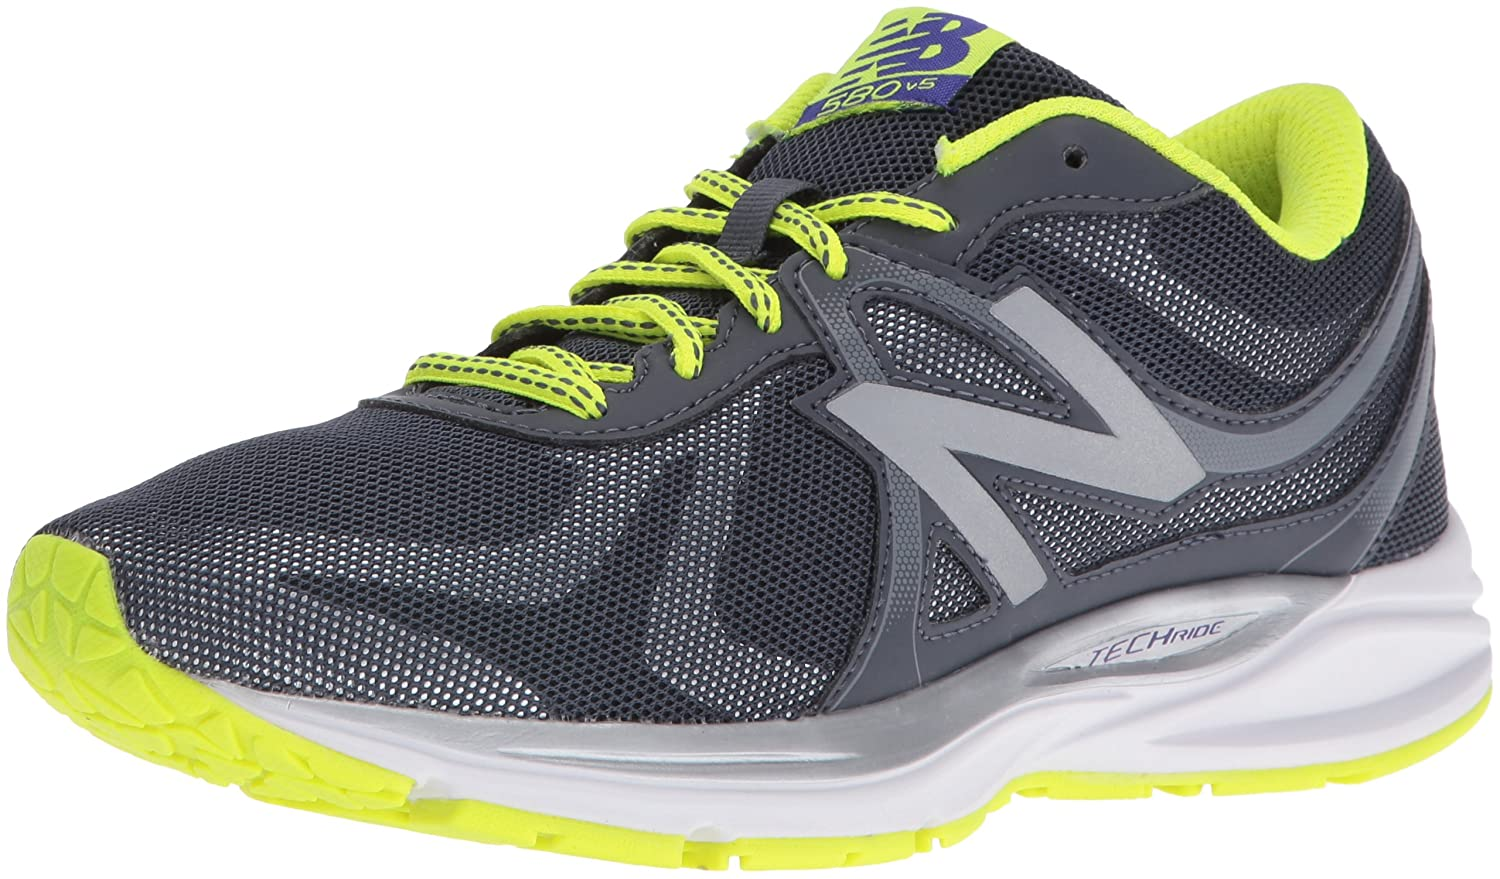 New Balance Women's W580LG5 Running Shoe B01CQV7GX4 5.5 D US|Dark Grey